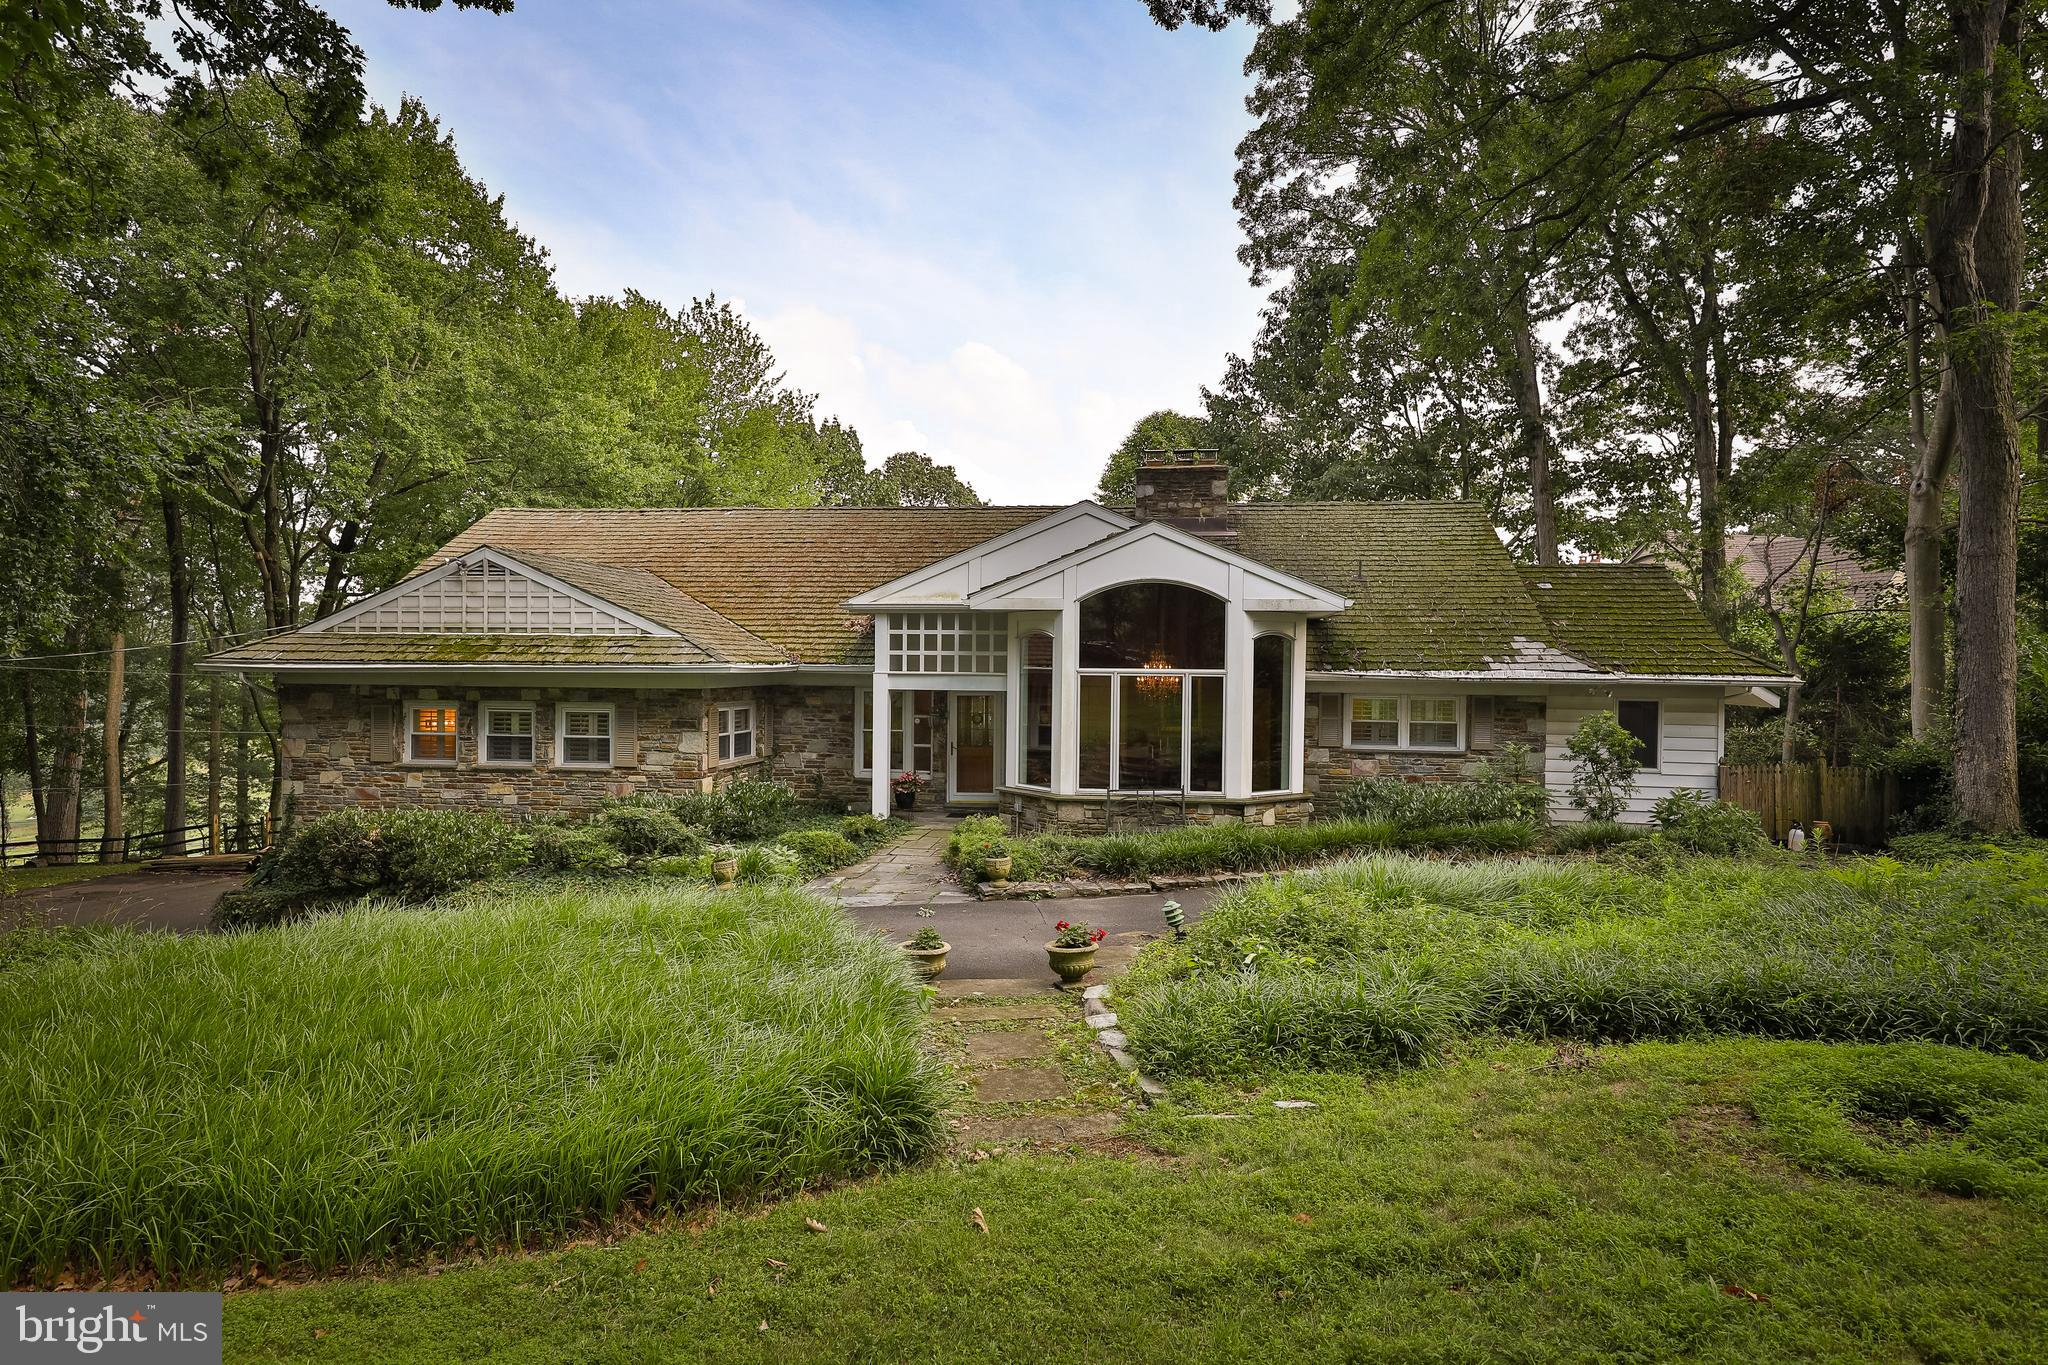 2245 Country Club Dr, Huntingdon Valley, PA, 19006